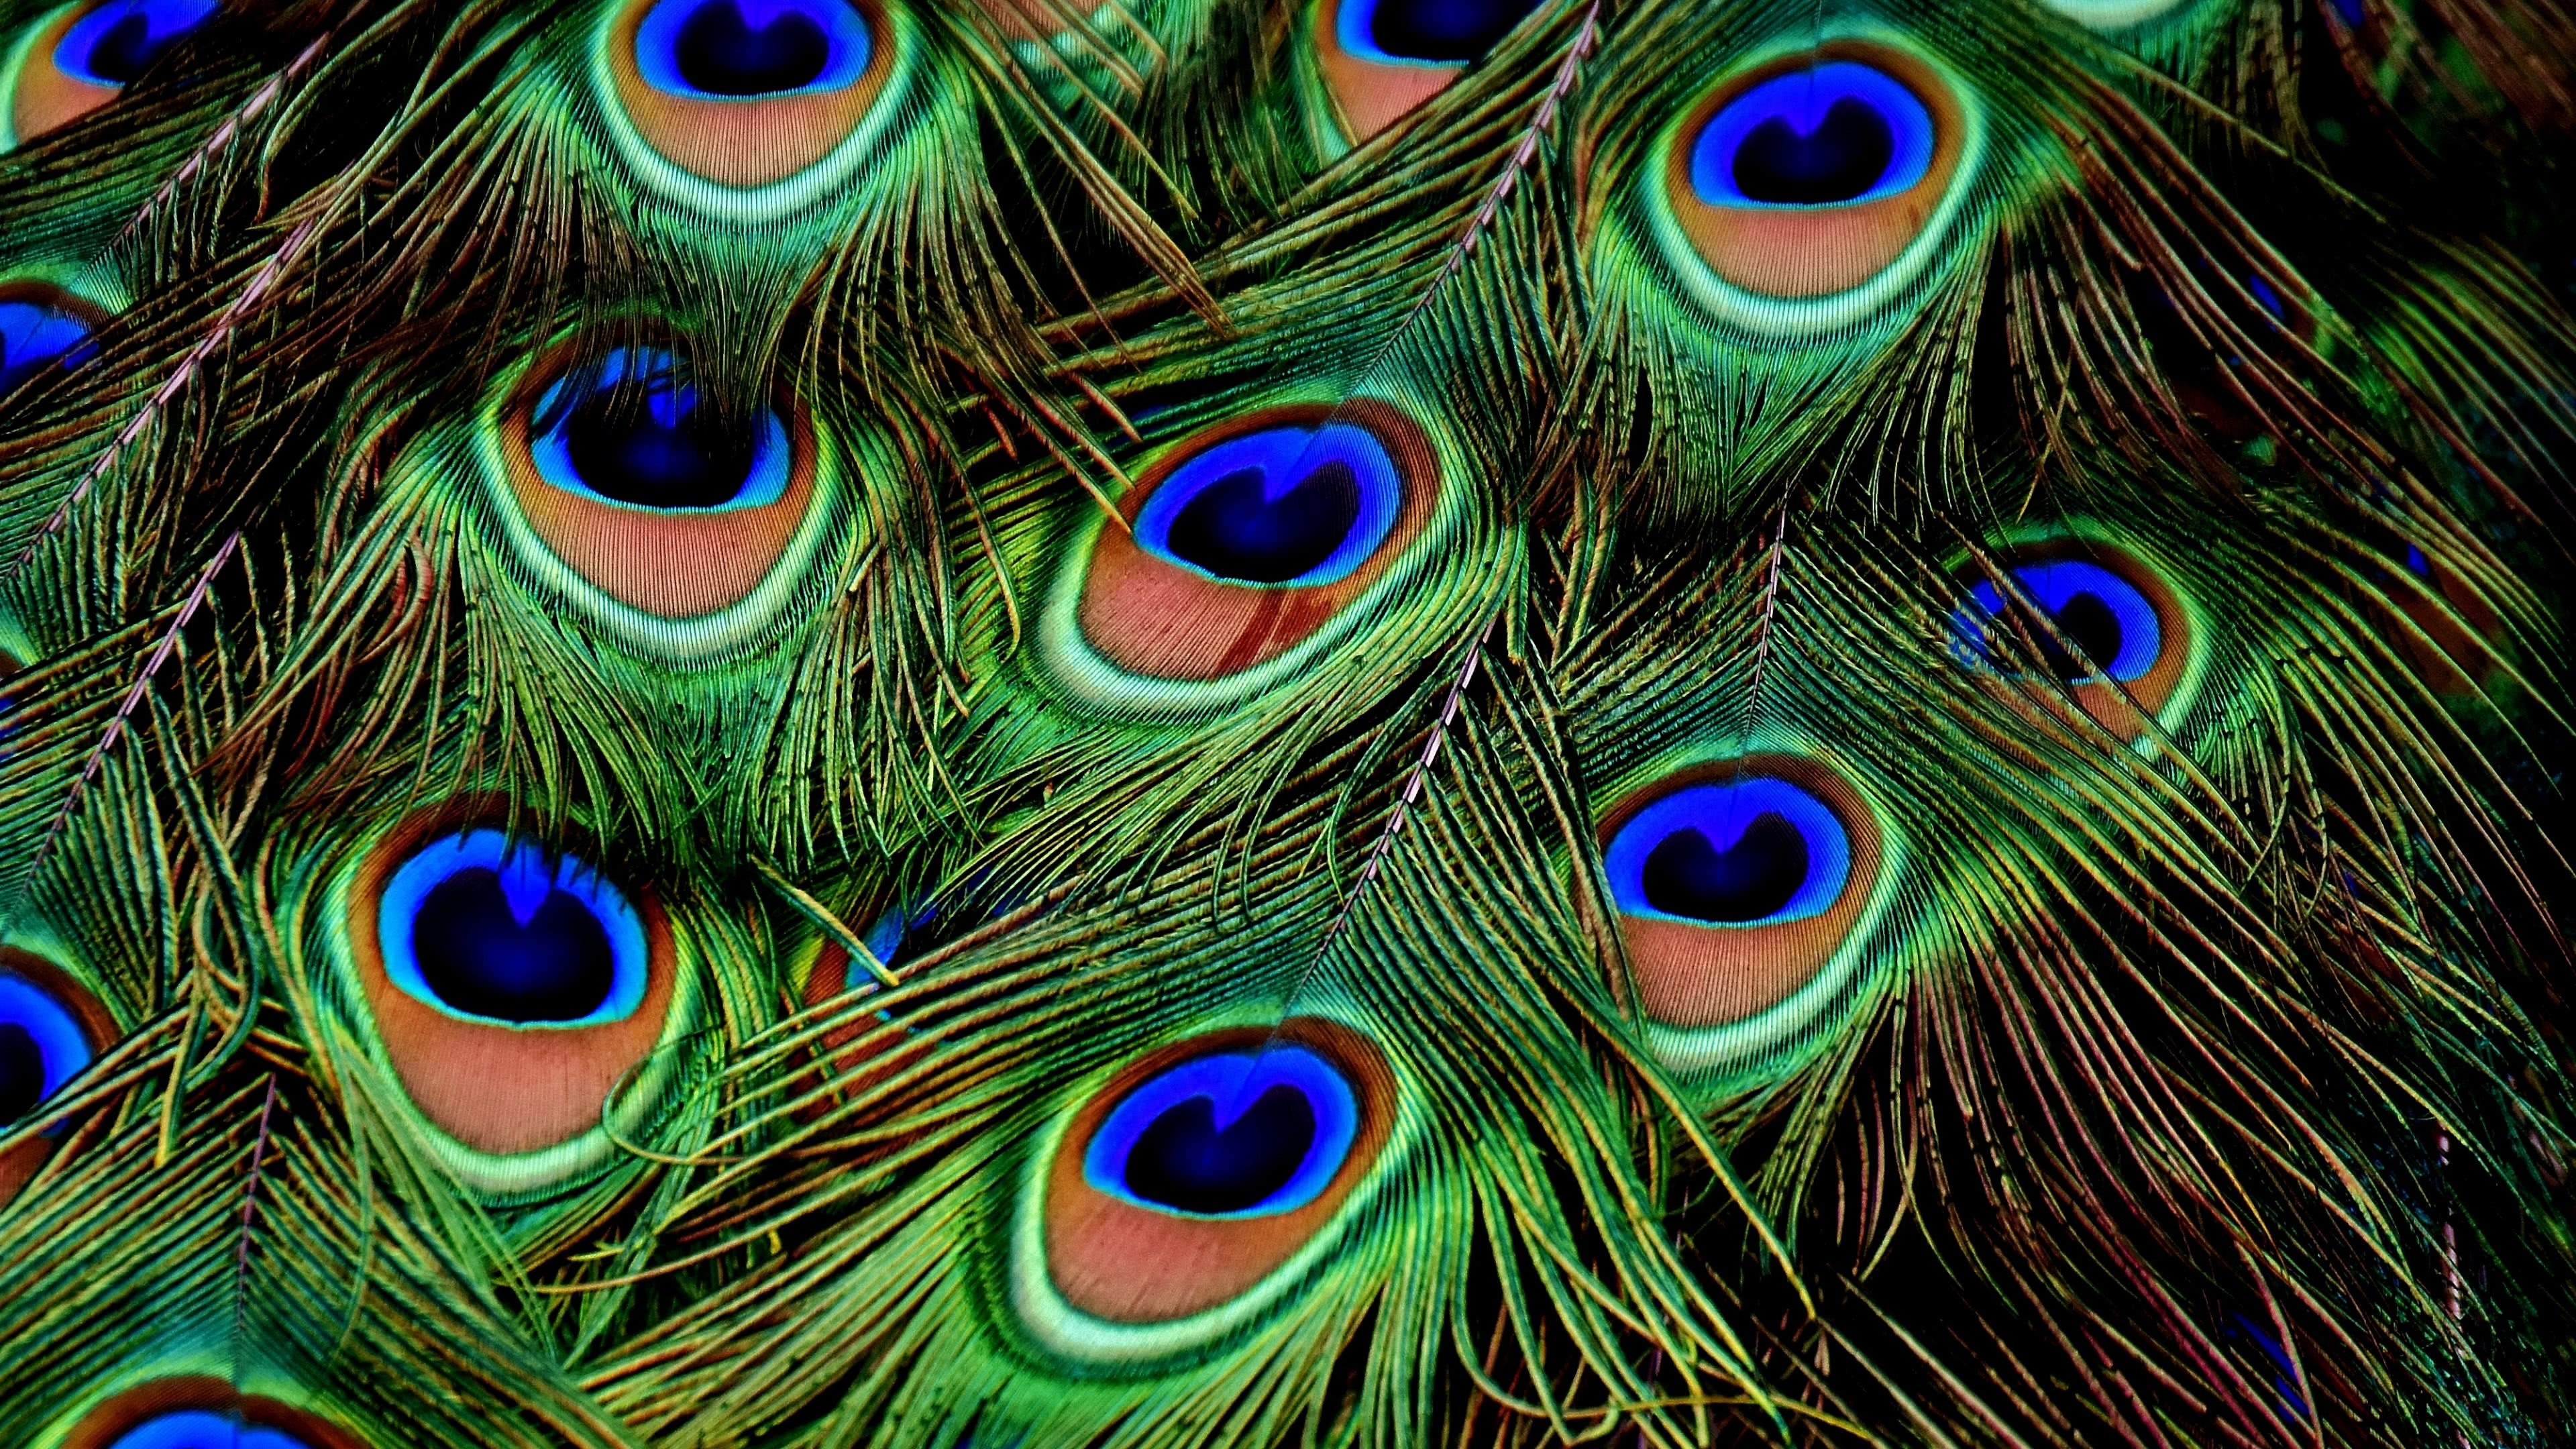 peacock feathers uhd 4k wallpaper